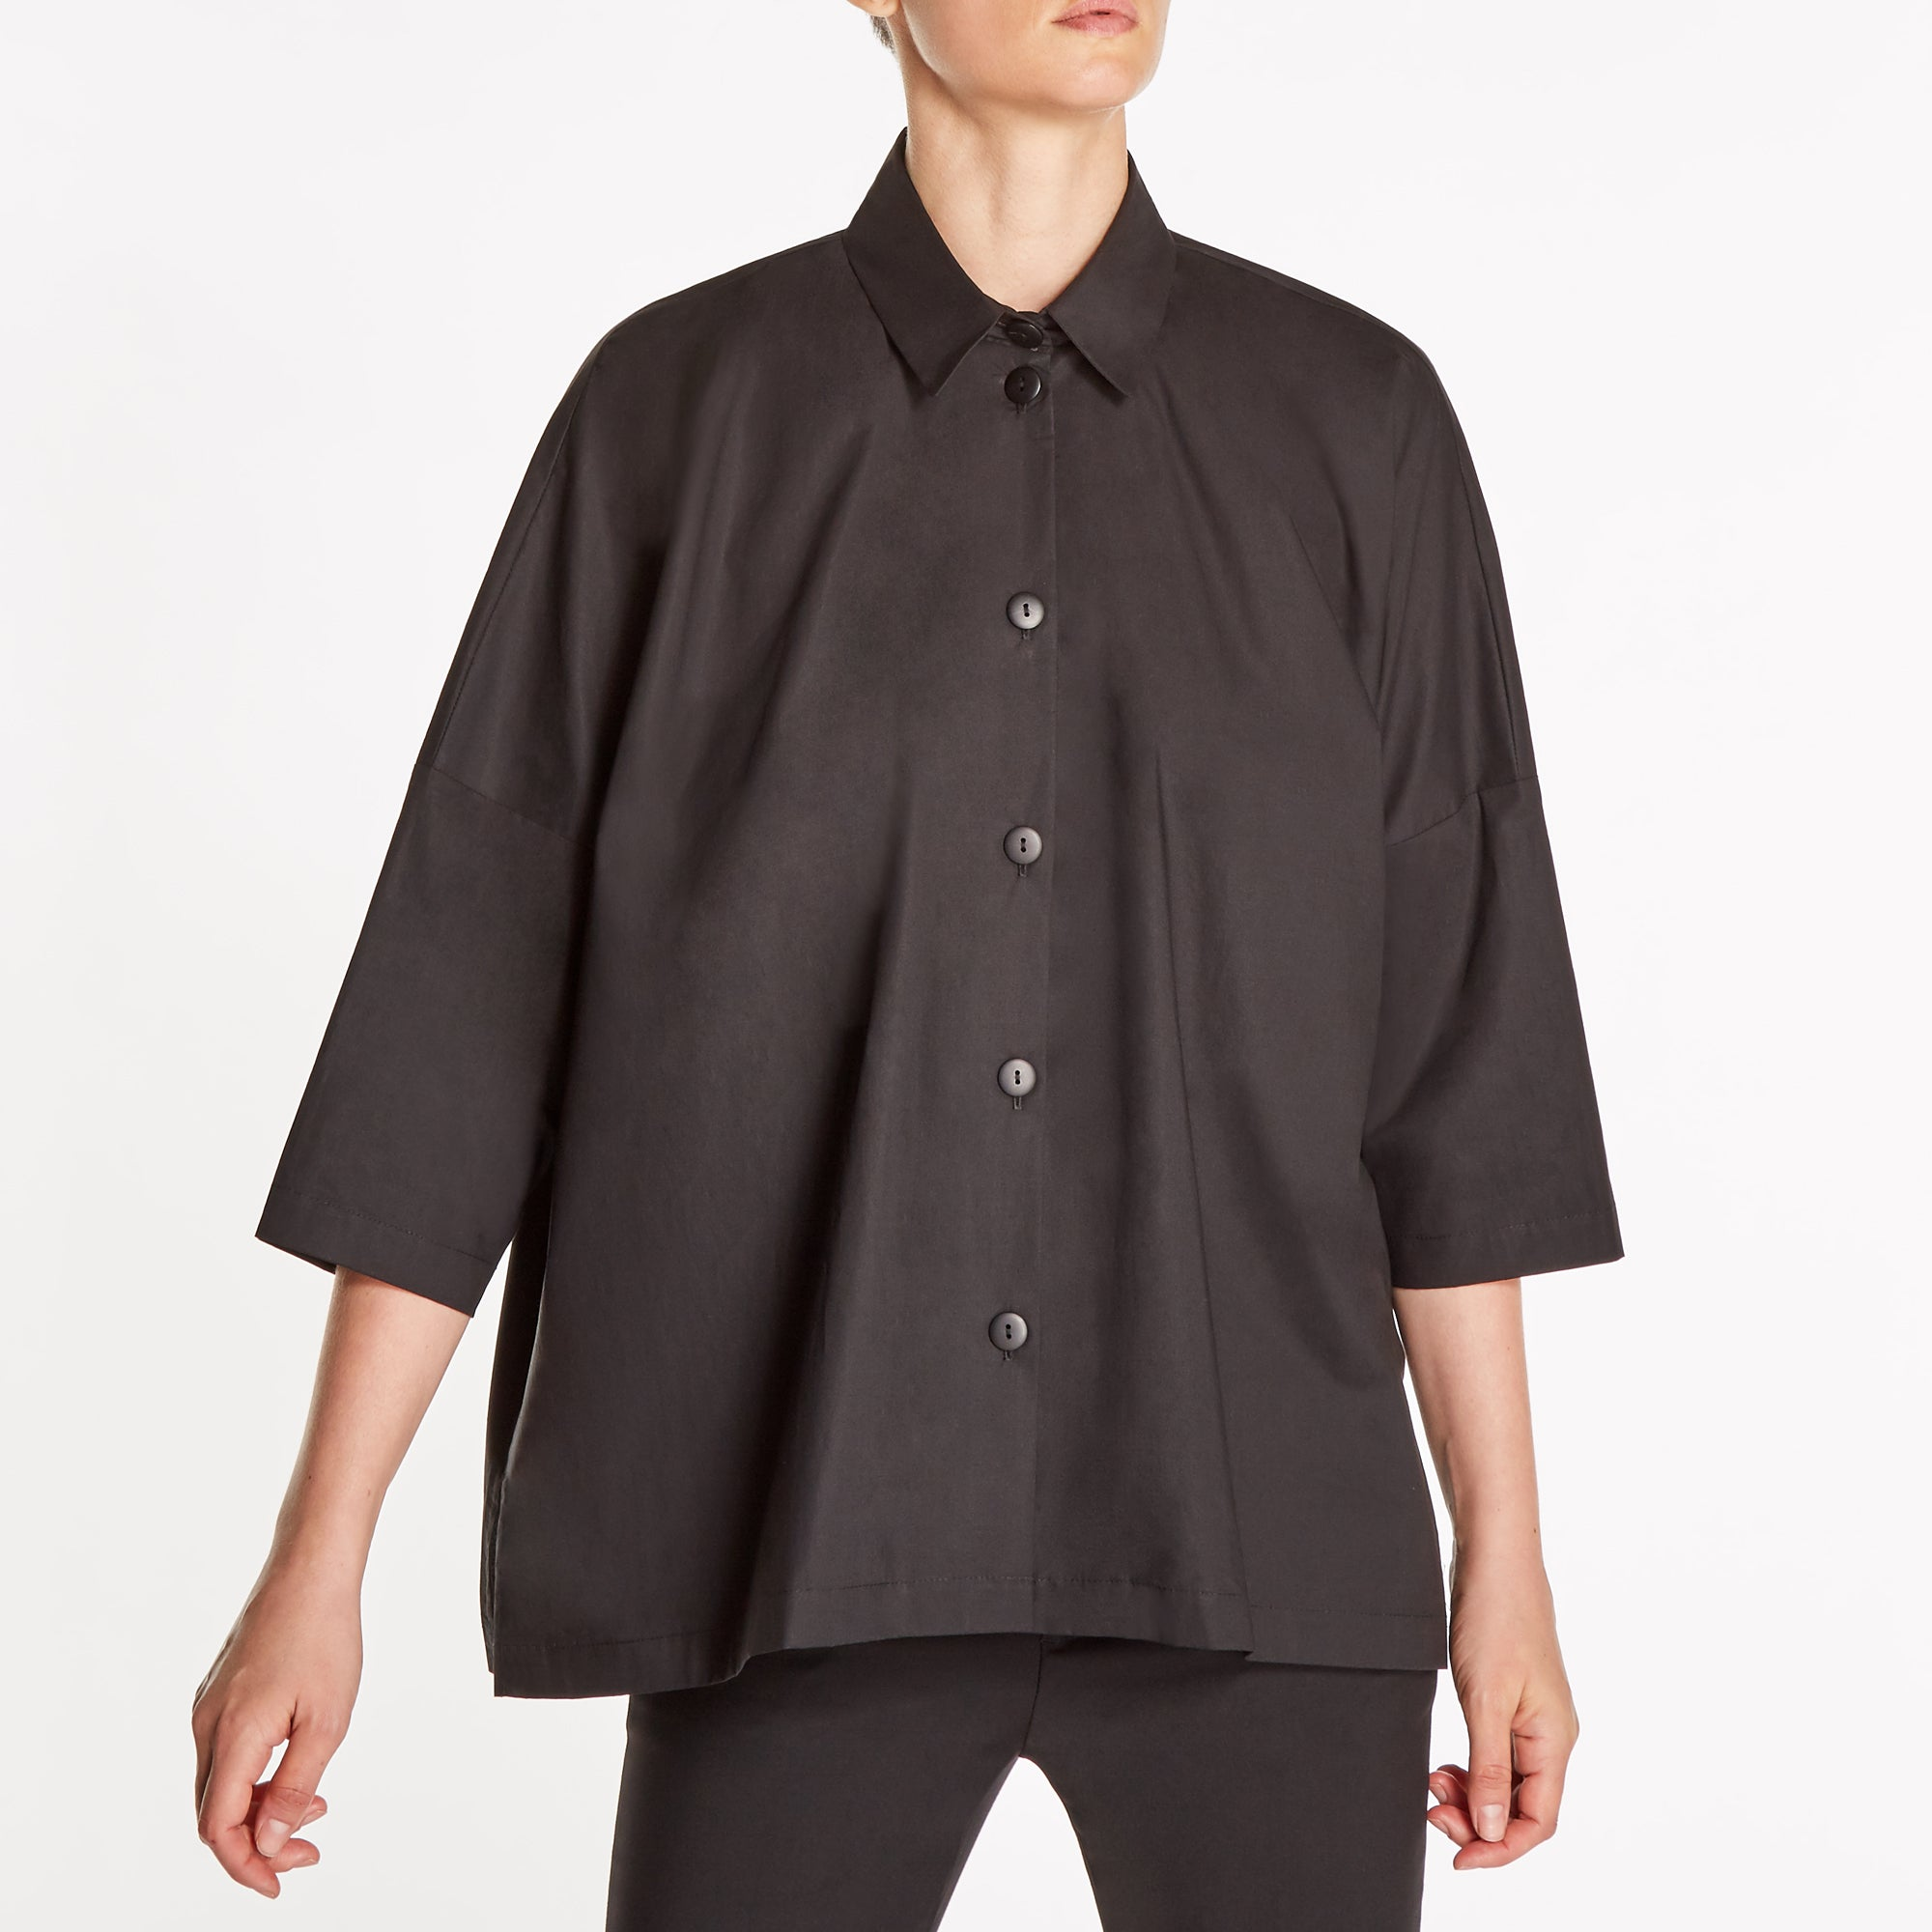 ITALIAN COTTON STANDARD LENGTH OVERSIZED SHIRT | MODERN BLACK